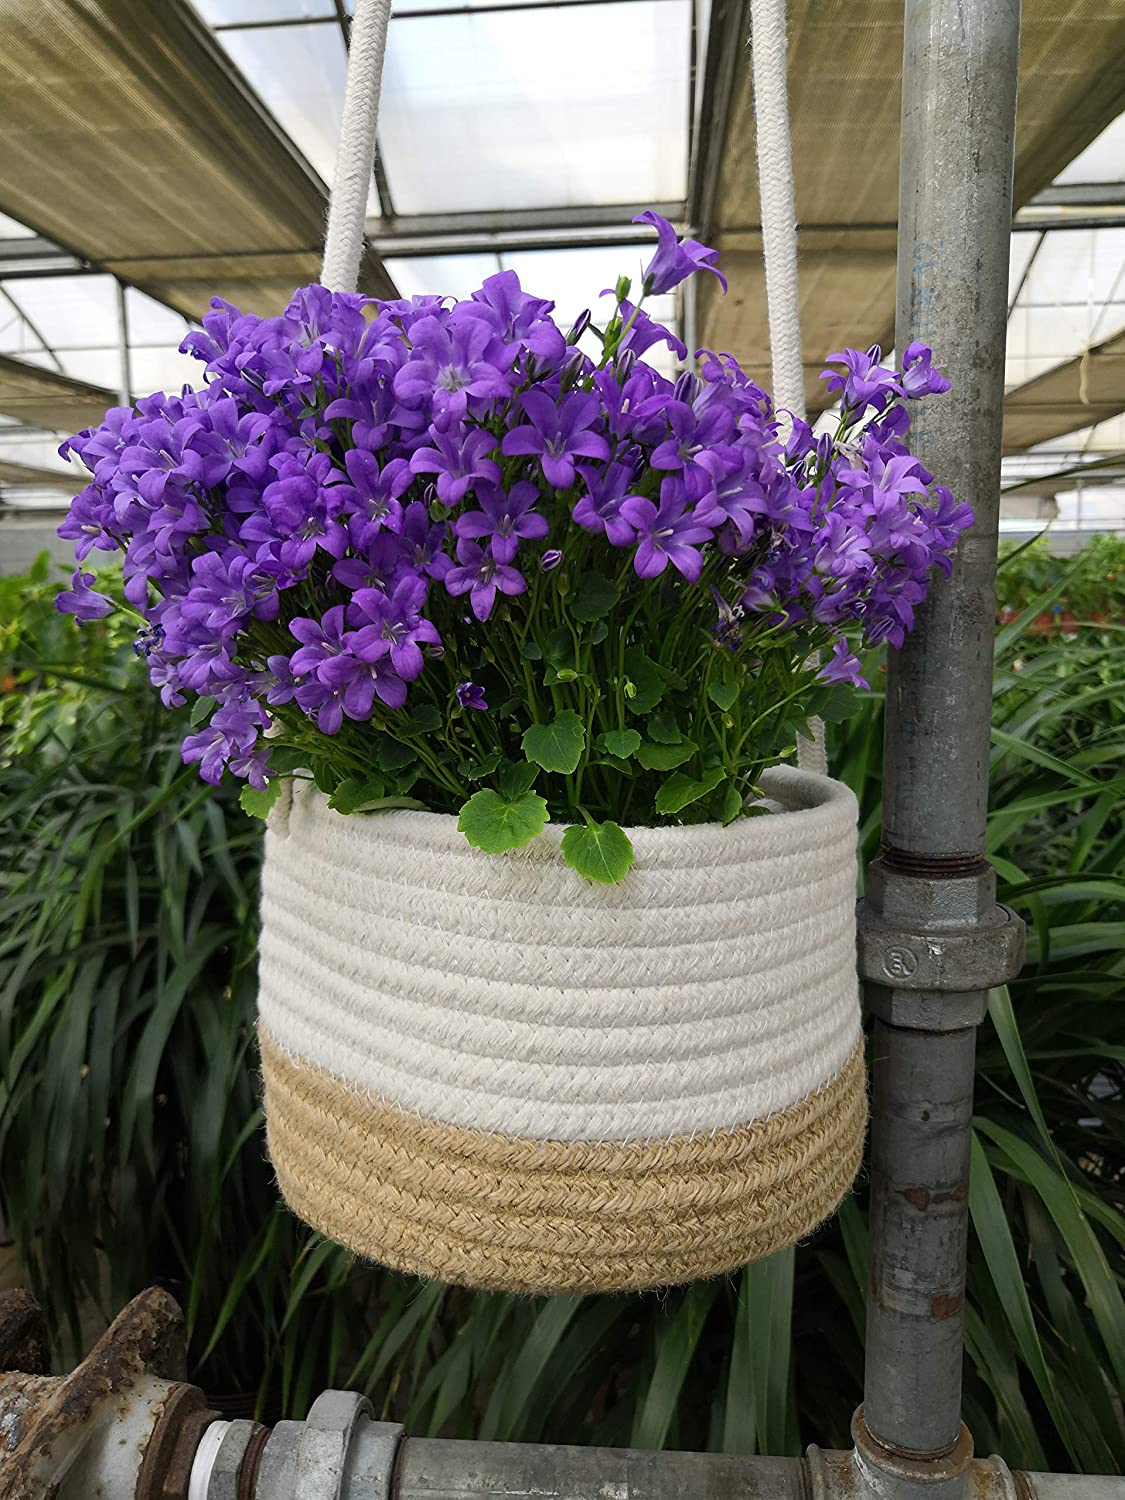 Wall Hanging Planter -1 pc- Cotton Rope Hanging Planter Woven Plant Basket Indoor Up to 7 Pot Macrame Plant Hangers Storage Organizer Home Decor Hanging Planter Basket Wall Basket for Plants Brown